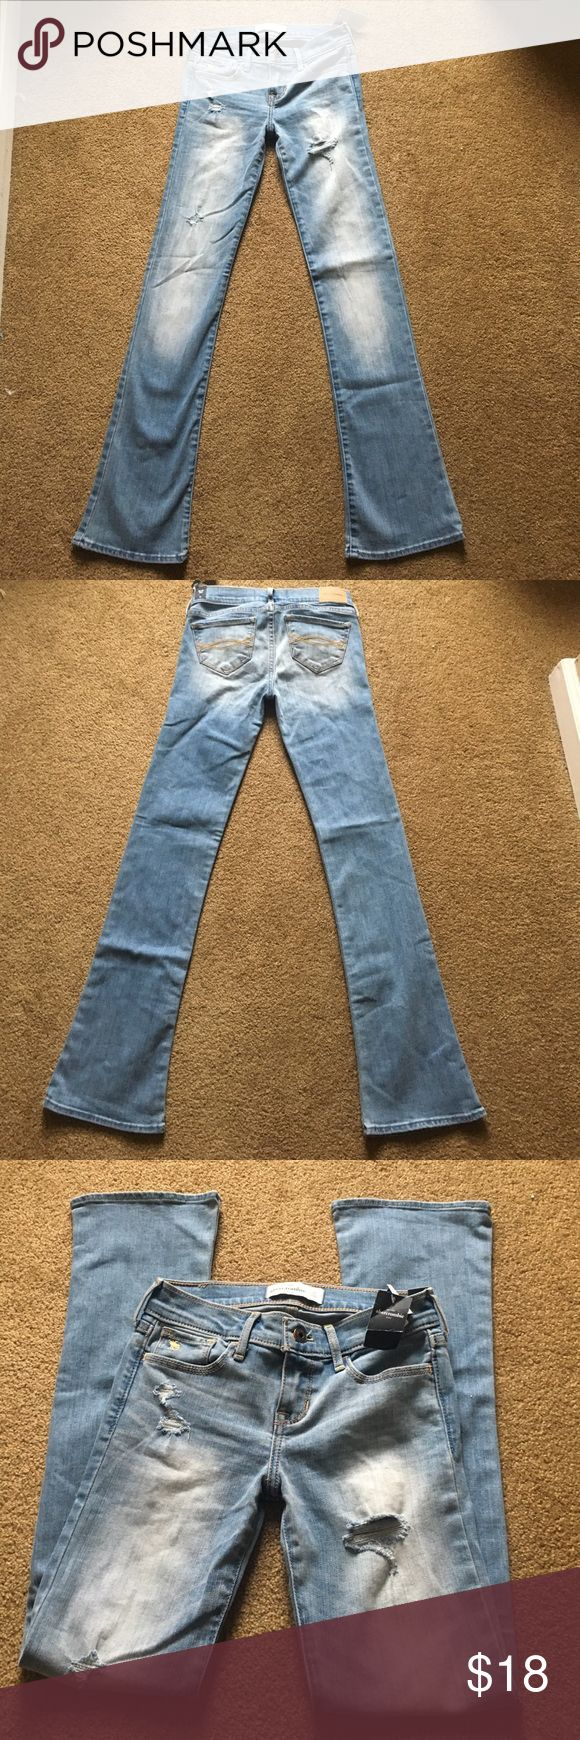 Abercrombie Kids Girls Bootcut Light Wash Jeans 12 NWT. Light wash Bootcut with distressing. Approximate measurements (may be slightly off) waist 12 in, Rise 7 in, hips 14 in, inseam 27.5 in and leg opening 7 in. abercrombie kids Bottoms Jeans